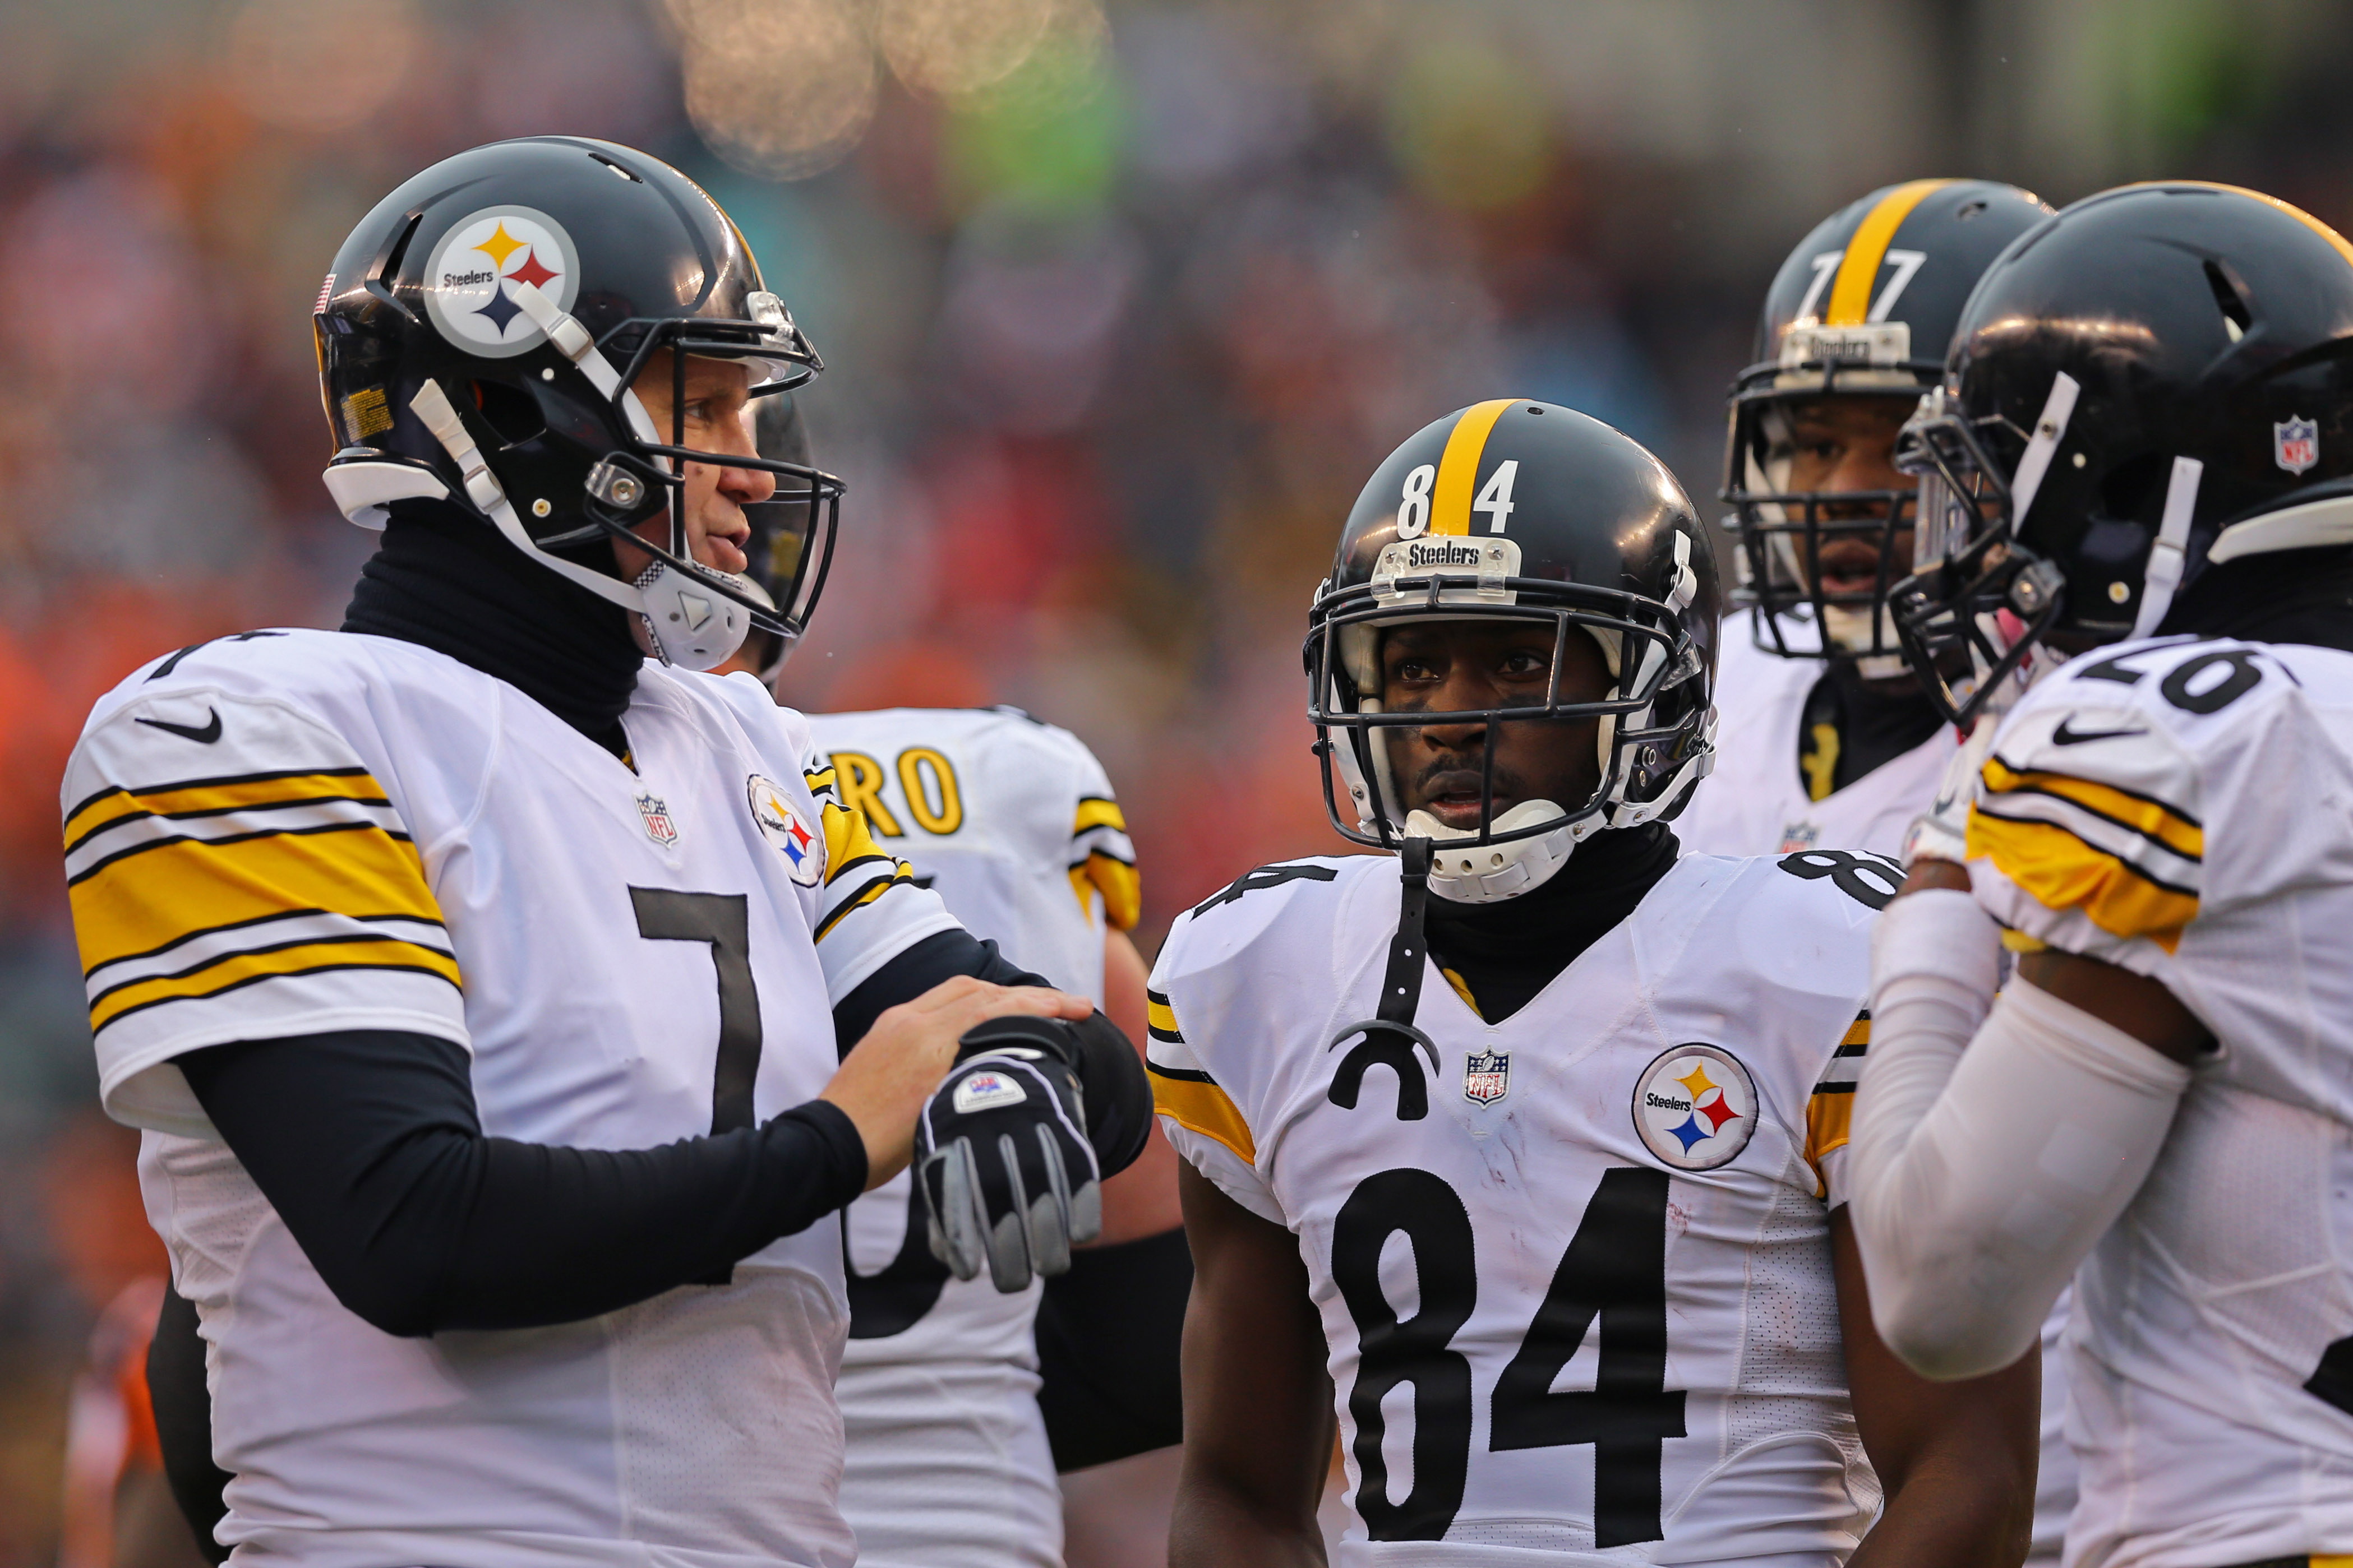 827dfc4404f Pittsburgh Steelers  Top 5 offensive players of the 2017 season